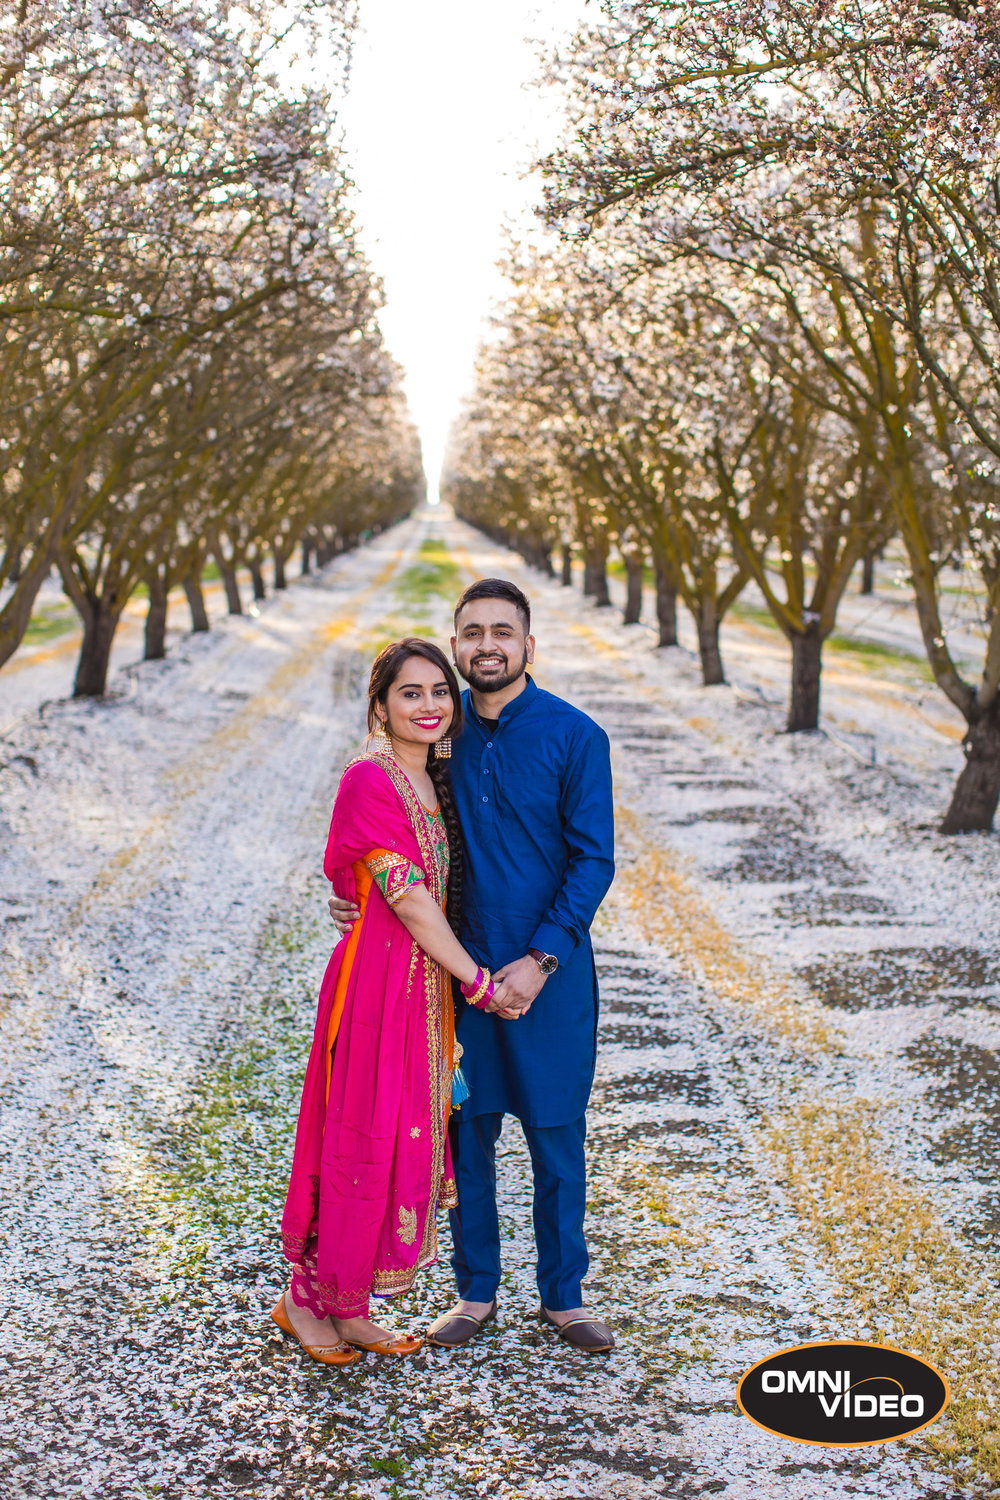 Sachdeep & Rupinder Engagement Photoshoot, Omni Video Blog